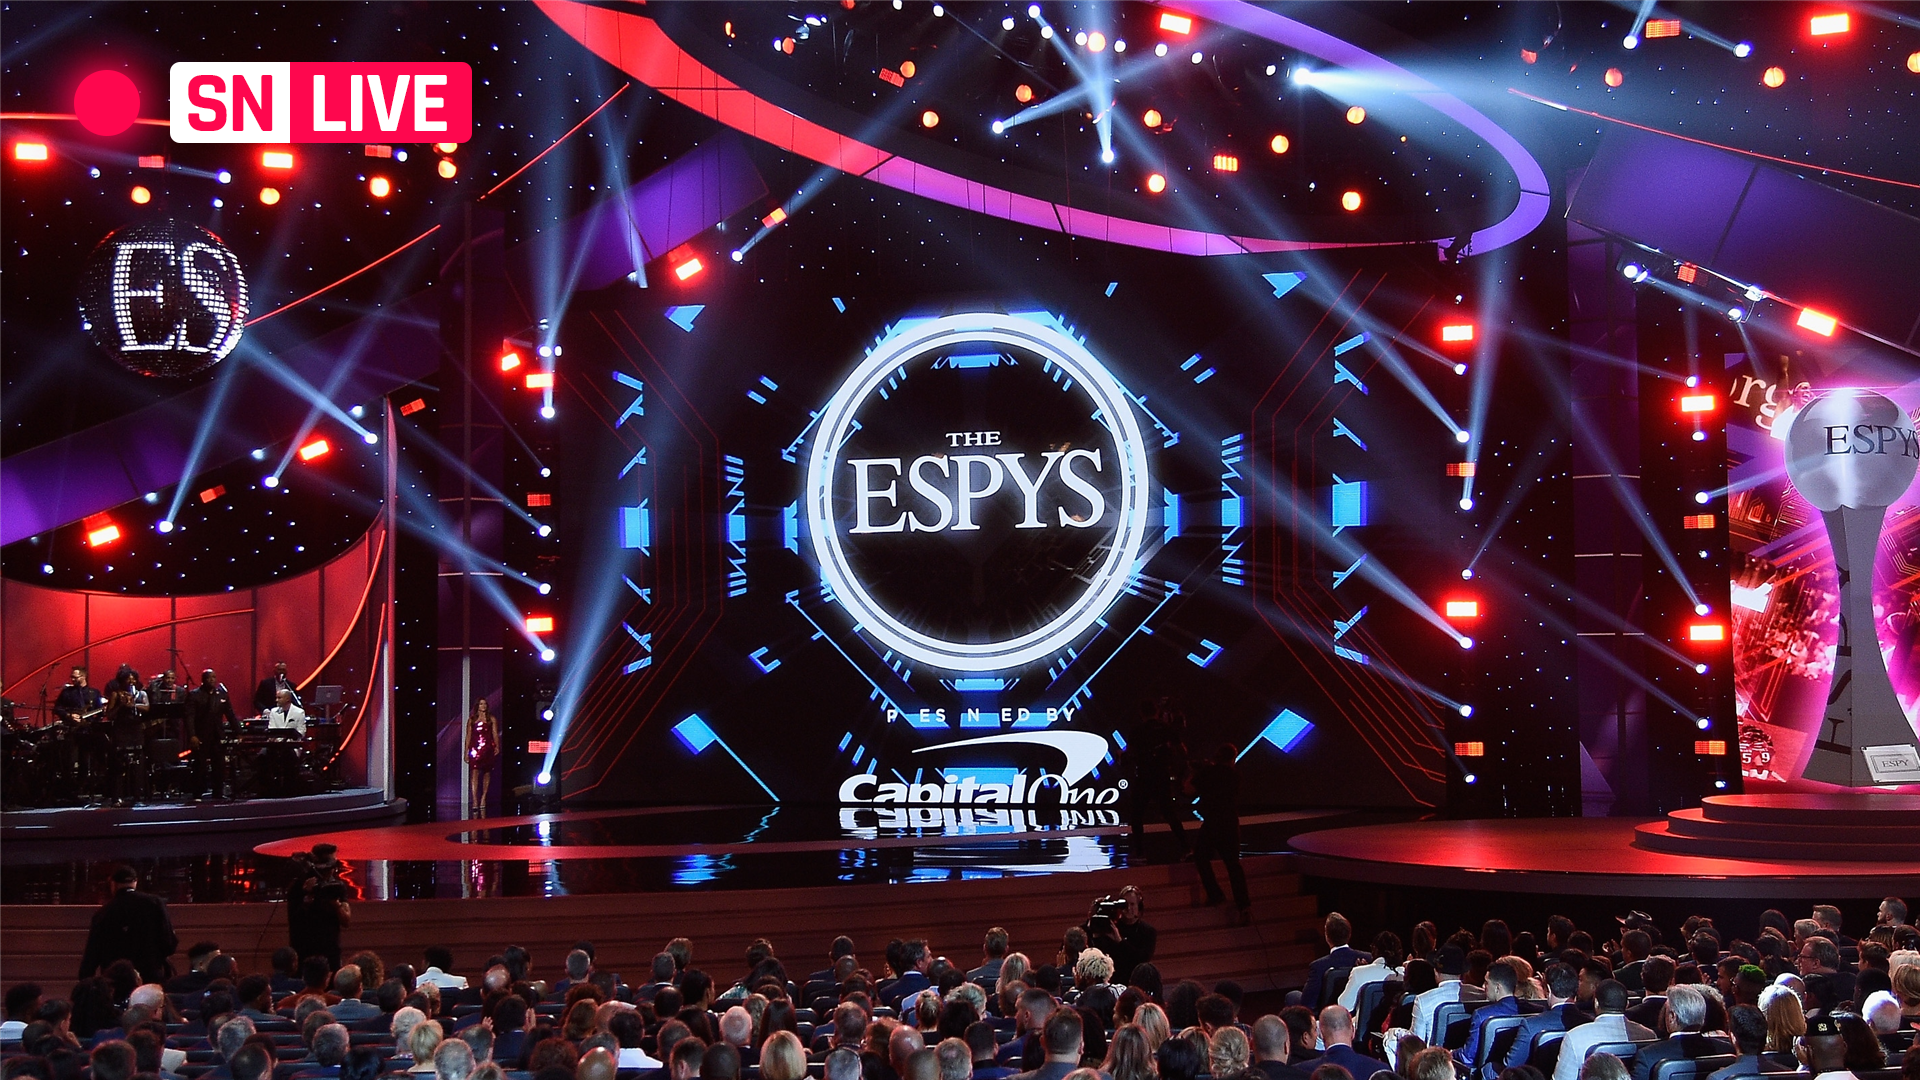 ESPY Award winners 2019: Live results, highlights, best moments from the ESPYs – Sporting News